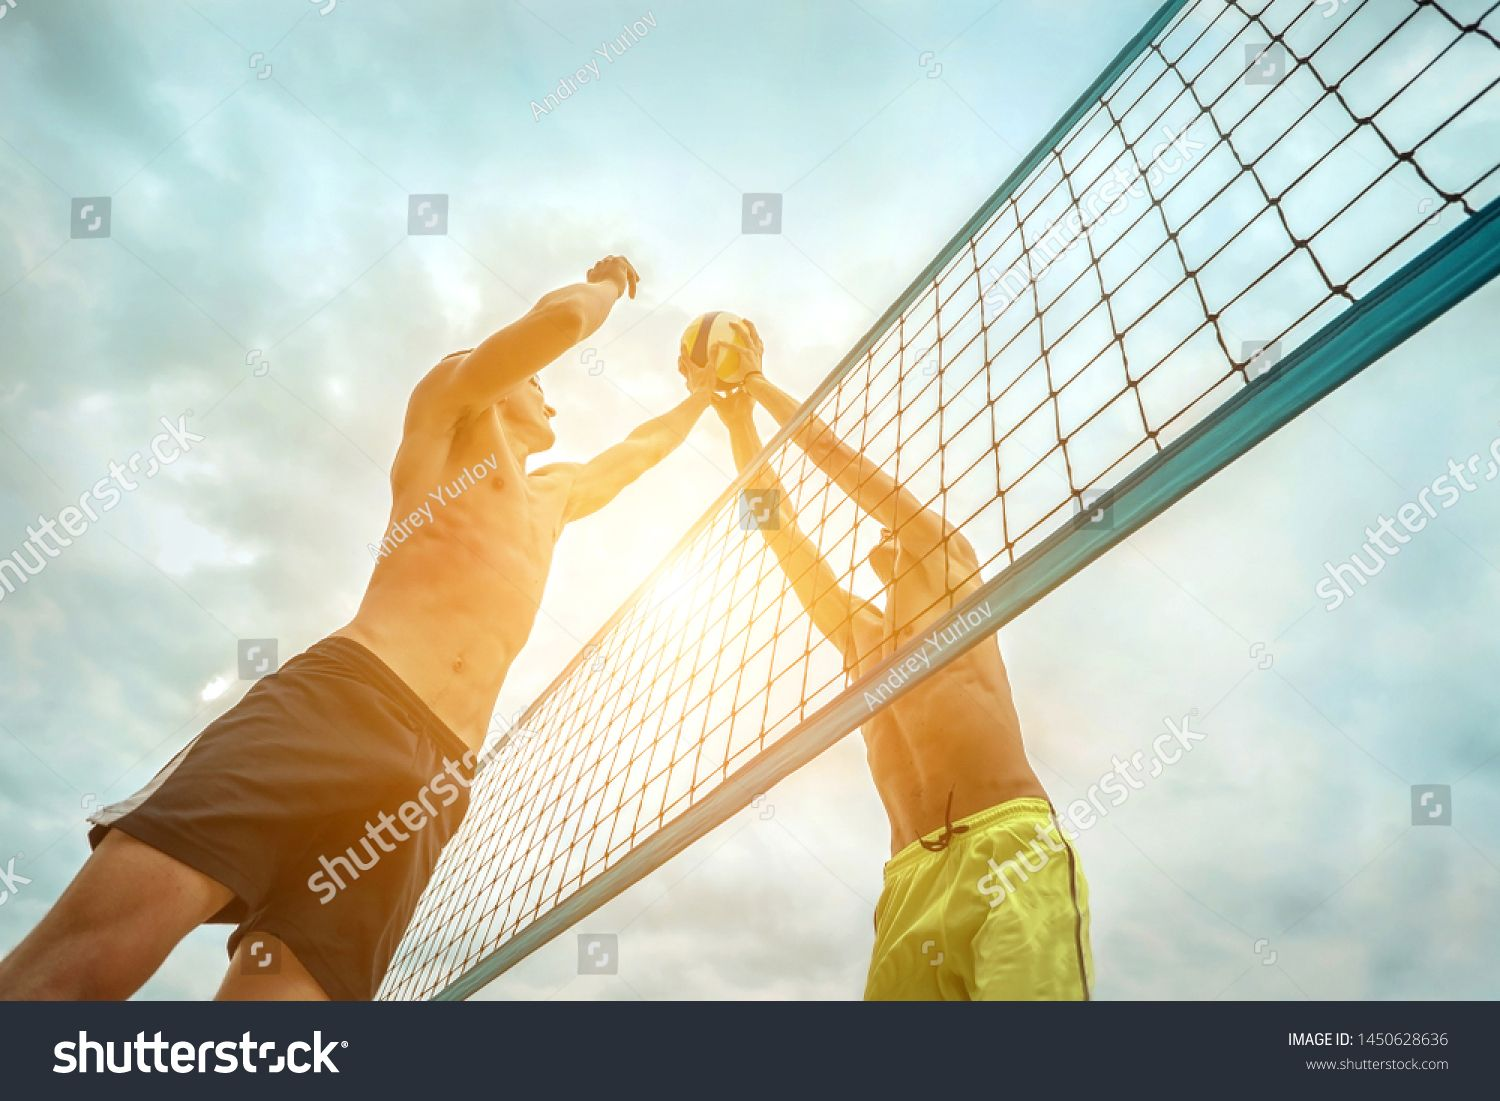 Beach Volleyball Players In Sunglasses In Action With Ball Under Sunlight Popular Dynamic Outdoor Sport For Peo In 2020 Beach Volleyball Volleyball Players Volleyball